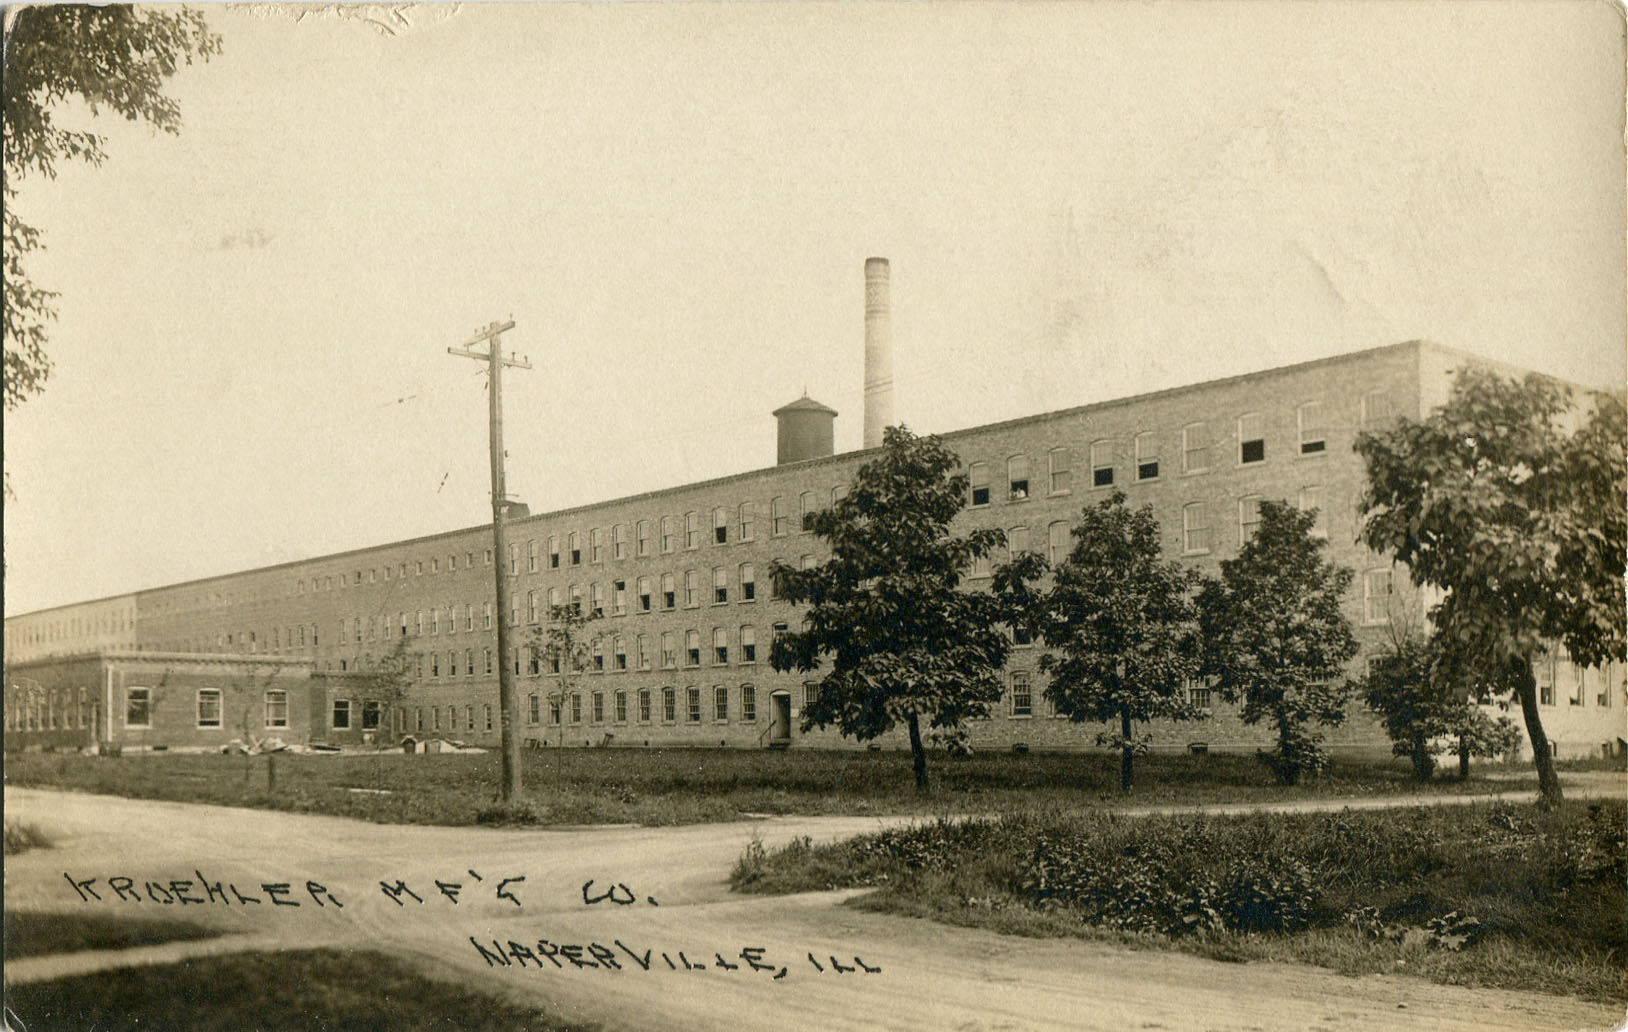 Kroehler Manufacturing Company postcard